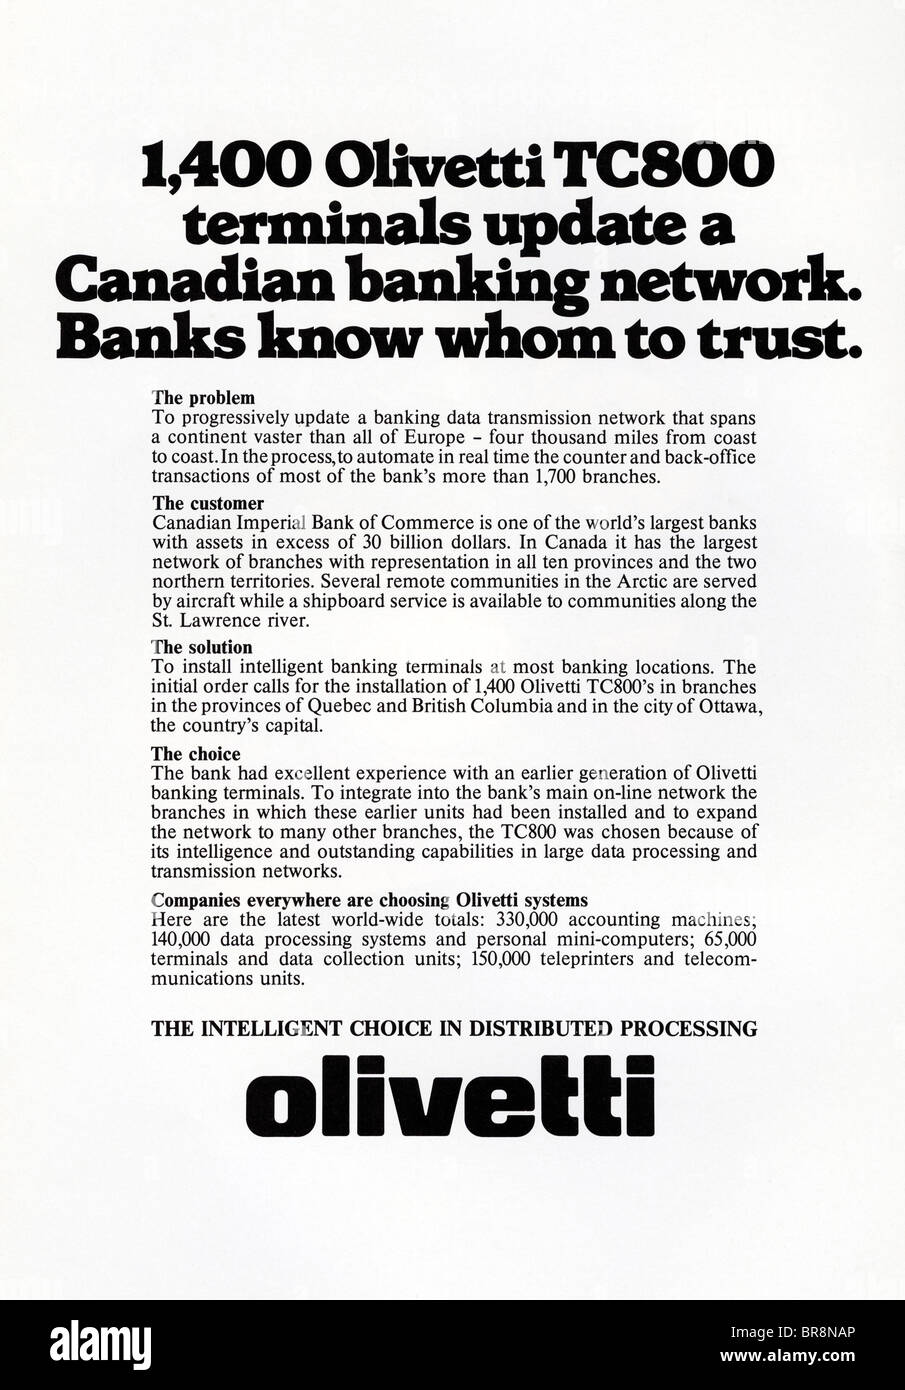 Black and white magazine text advert for Olivetti Canadian banking network circa 1978 - Stock Image